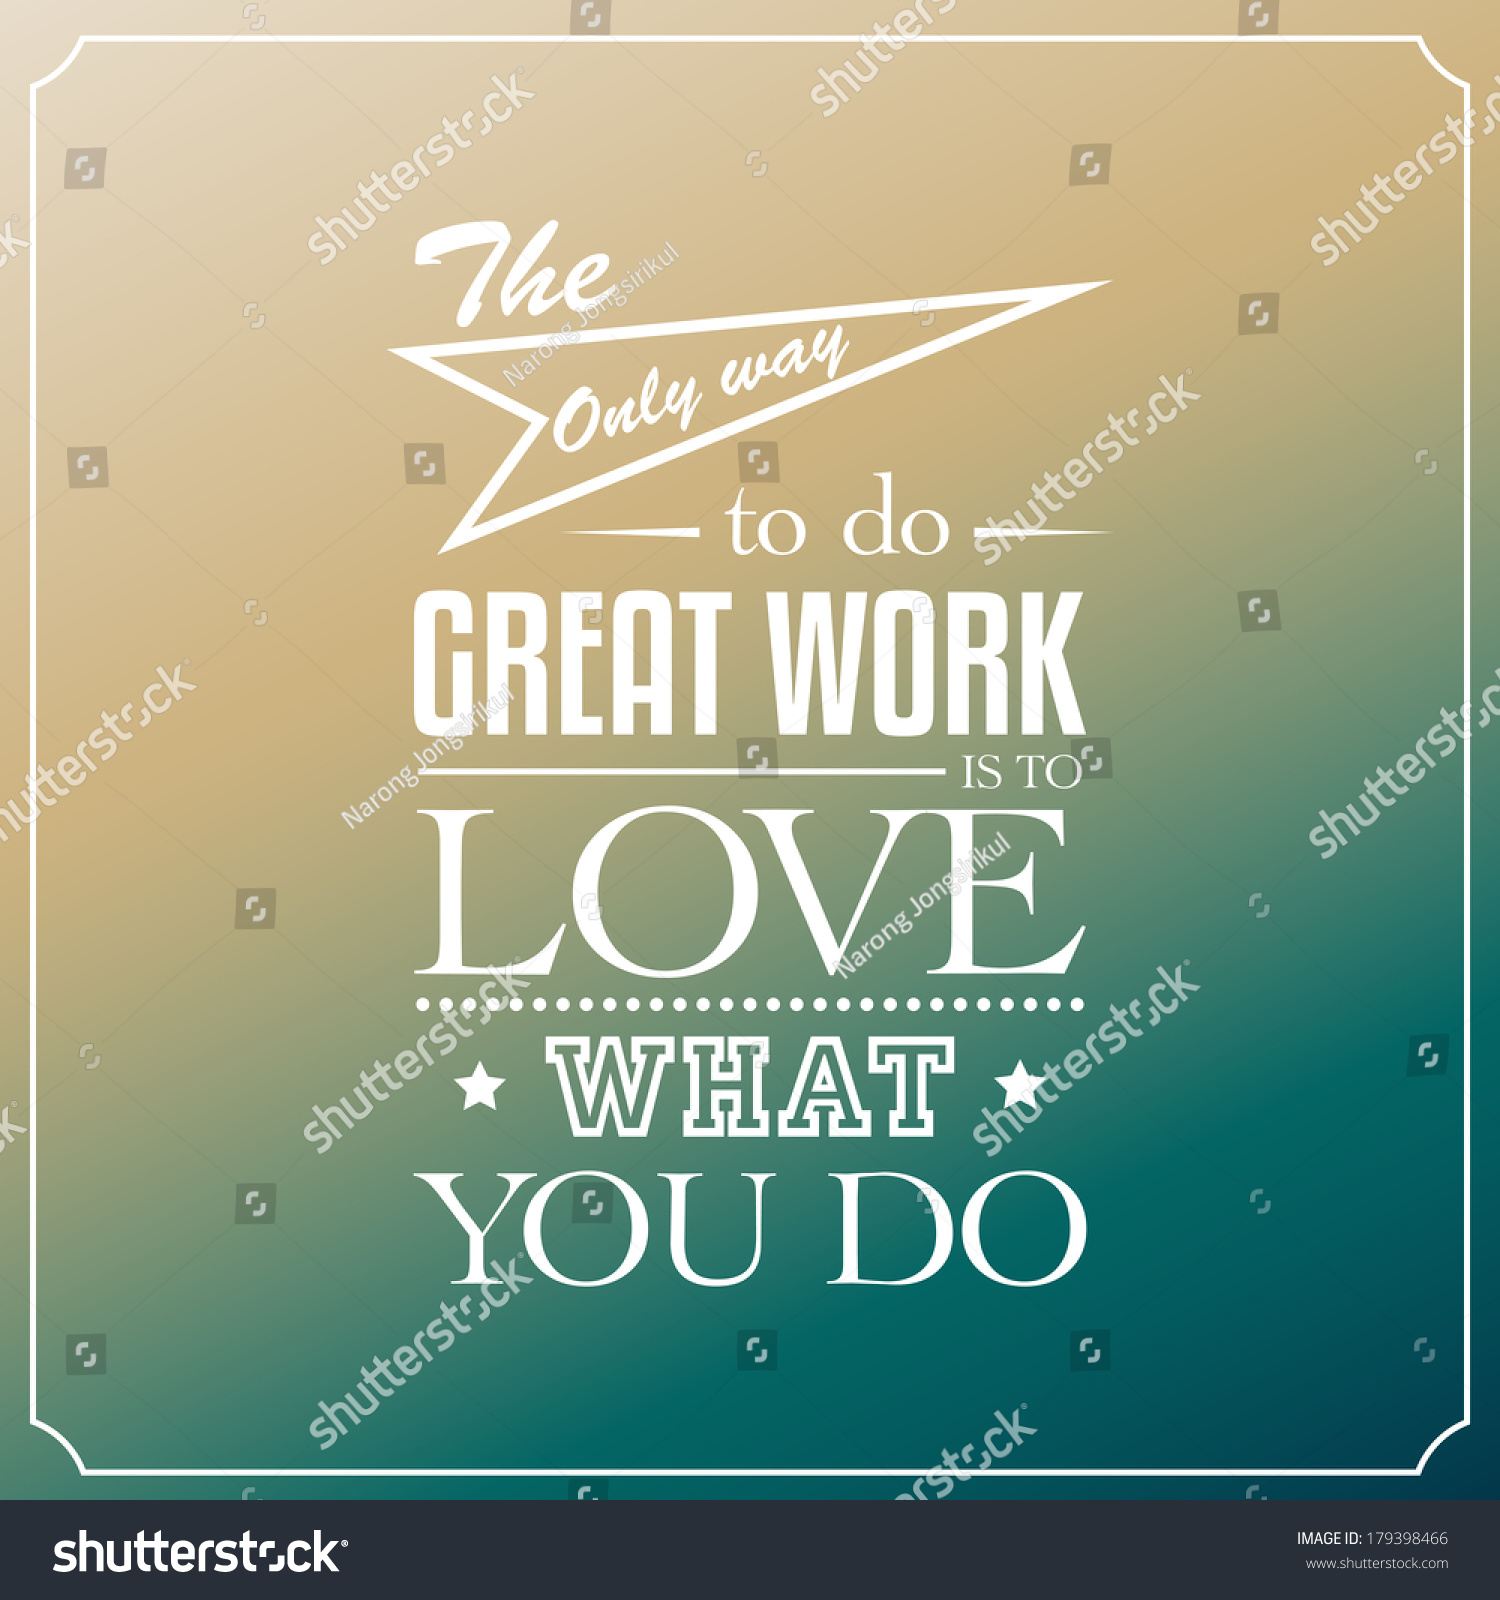 Great Working With You Quotes: Only Way Great Work Love What Stock Vector 179398466